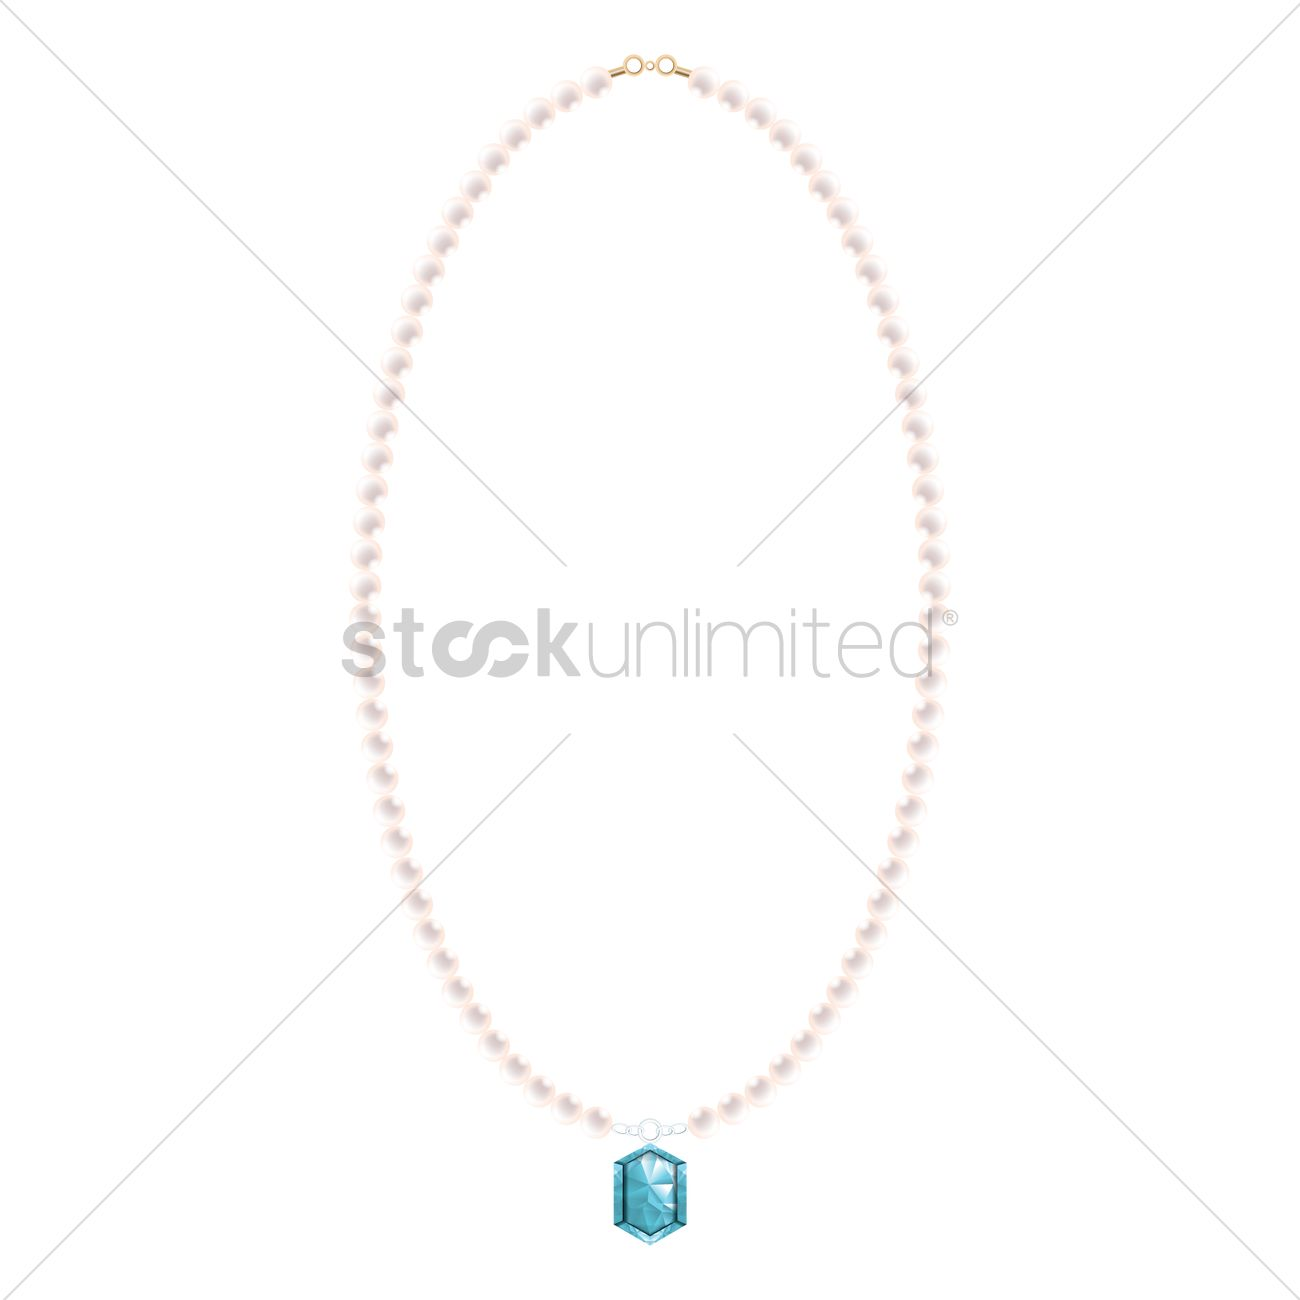 1300x1300 Pearl Necklace Vector Image